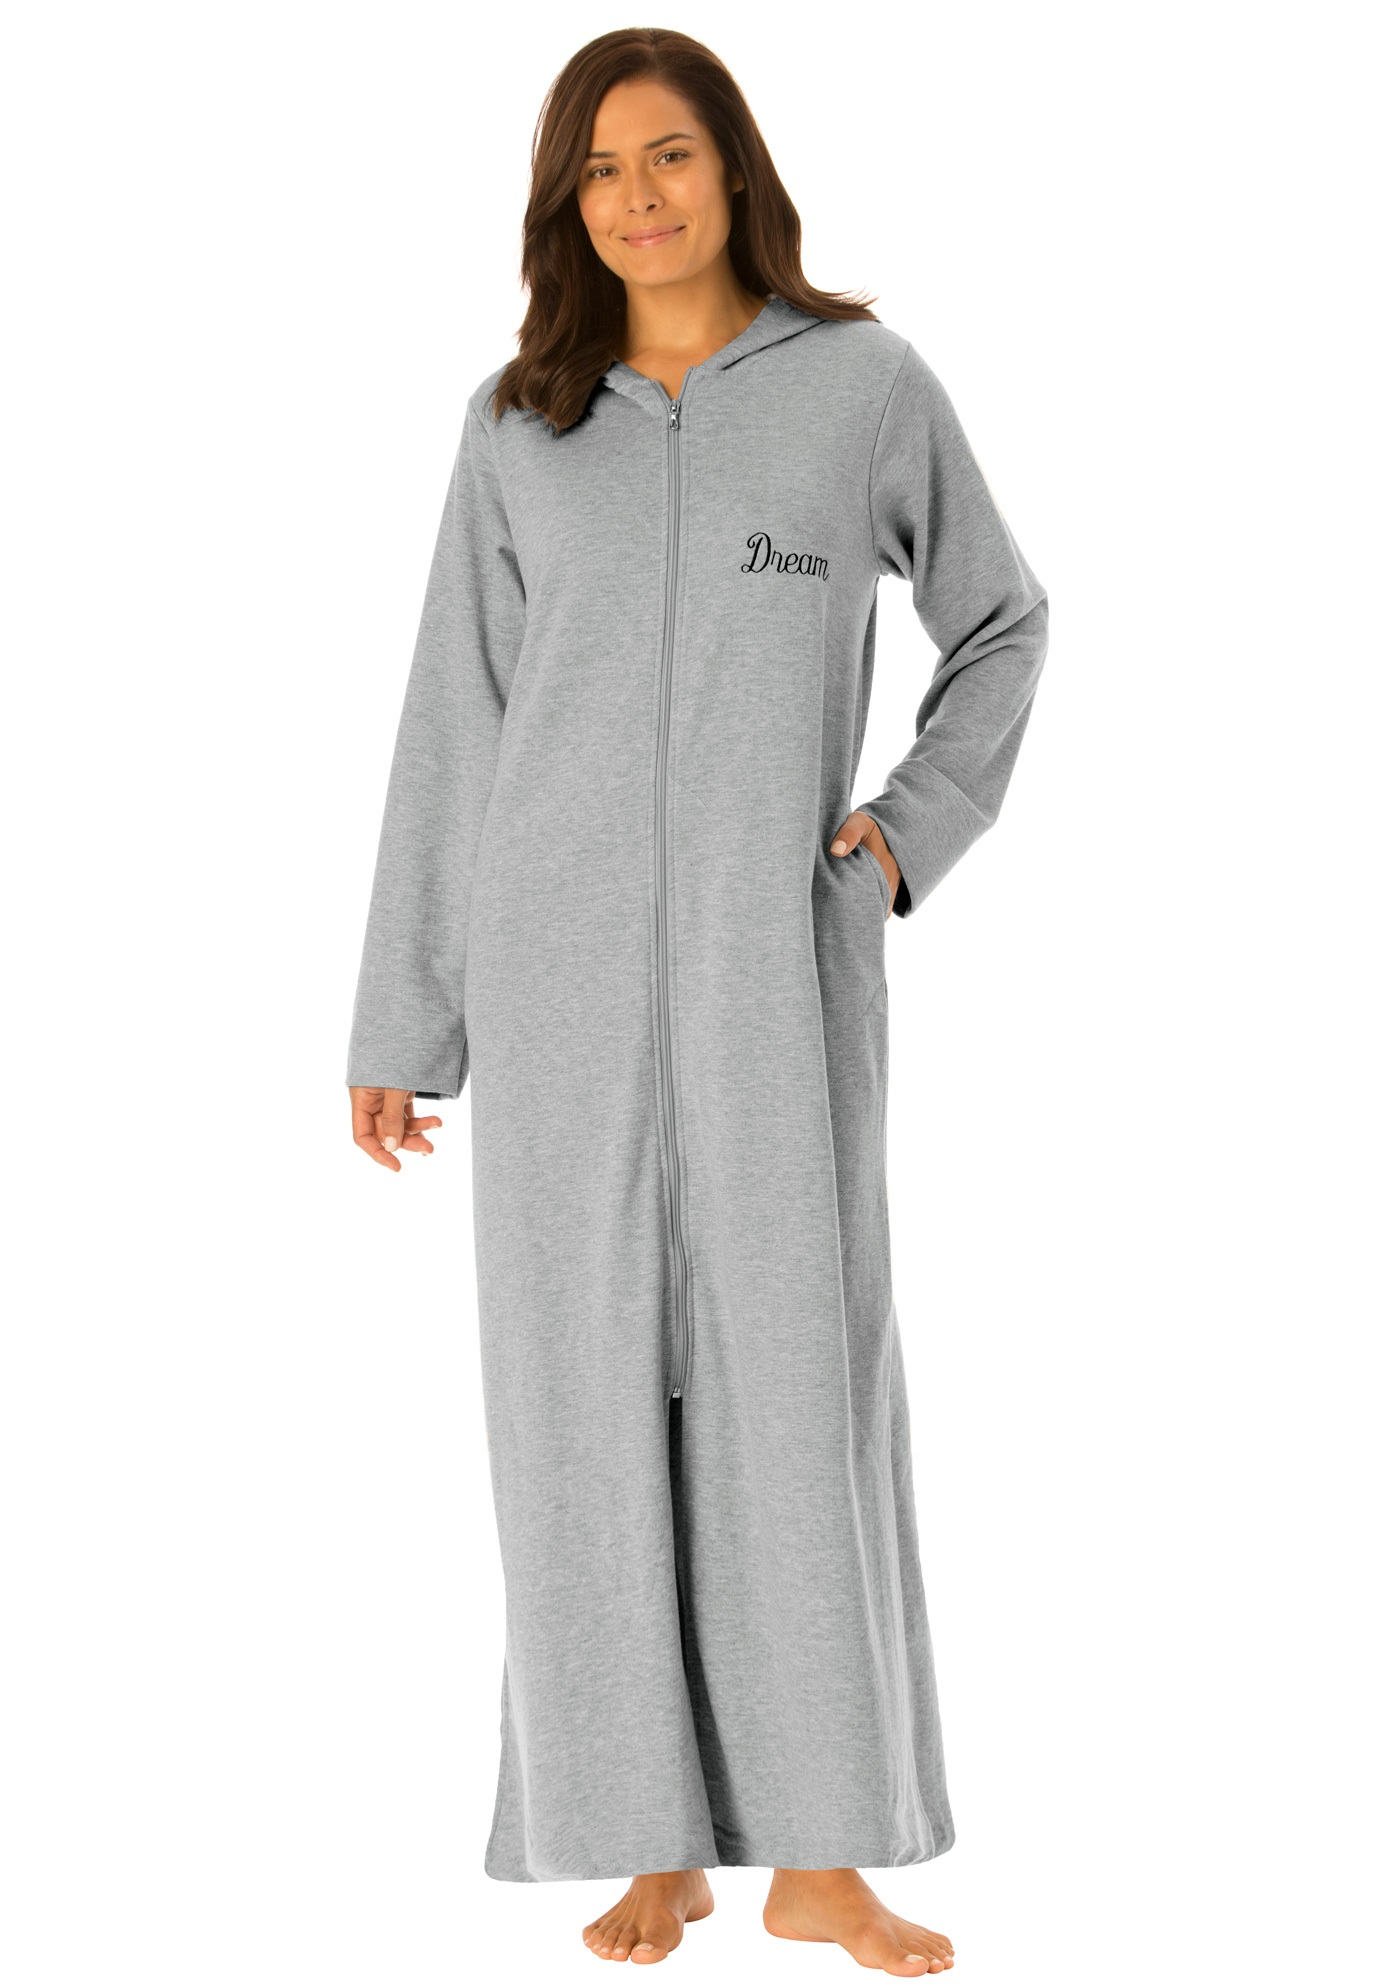 Personalized long ultrasoft hoodie robe by Dreams & Co.®, HEATHER GREY, hi-res